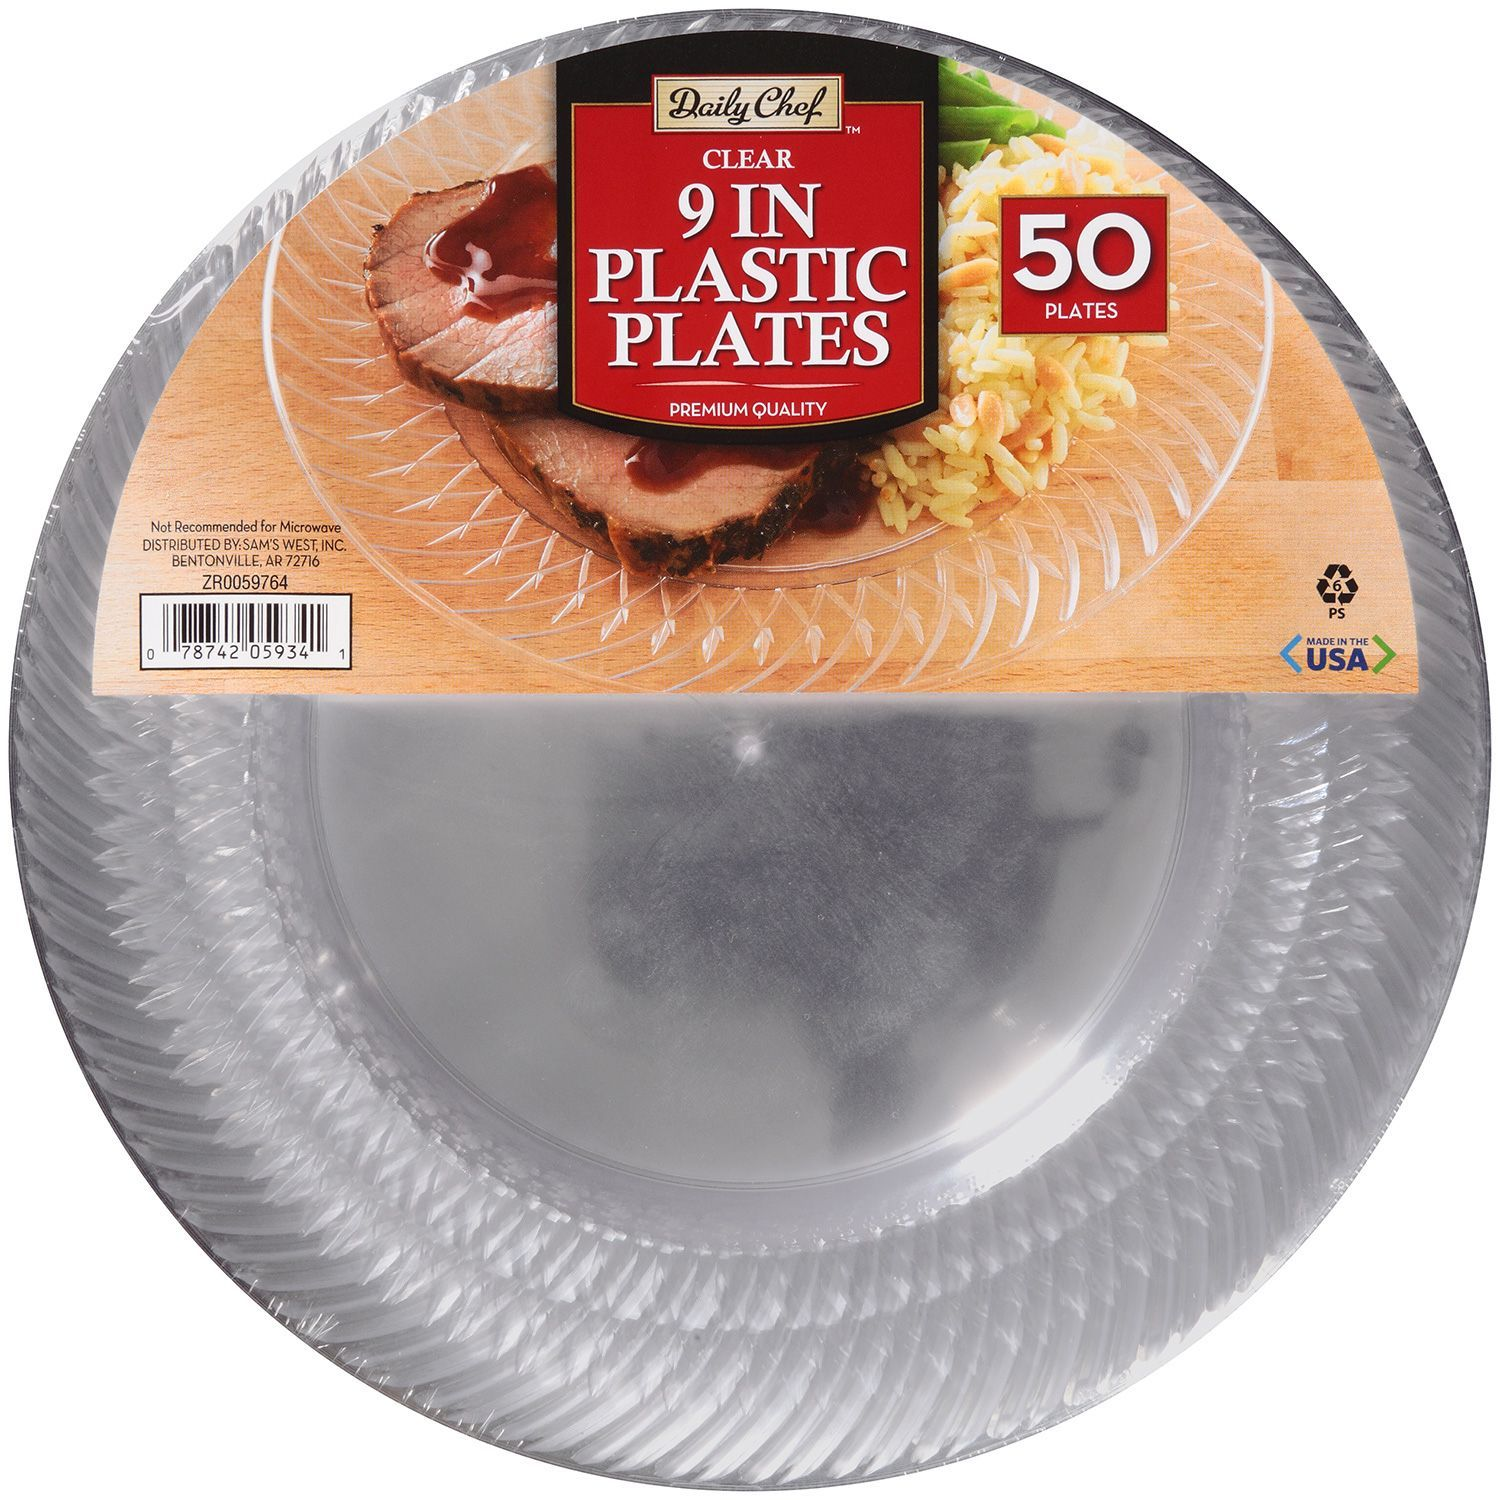 Daily Chef Clear 9  Plastic Plates (50 ct.) - Samu0027s Club  sc 1 st  Pinterest & Daily Chef Clear 9